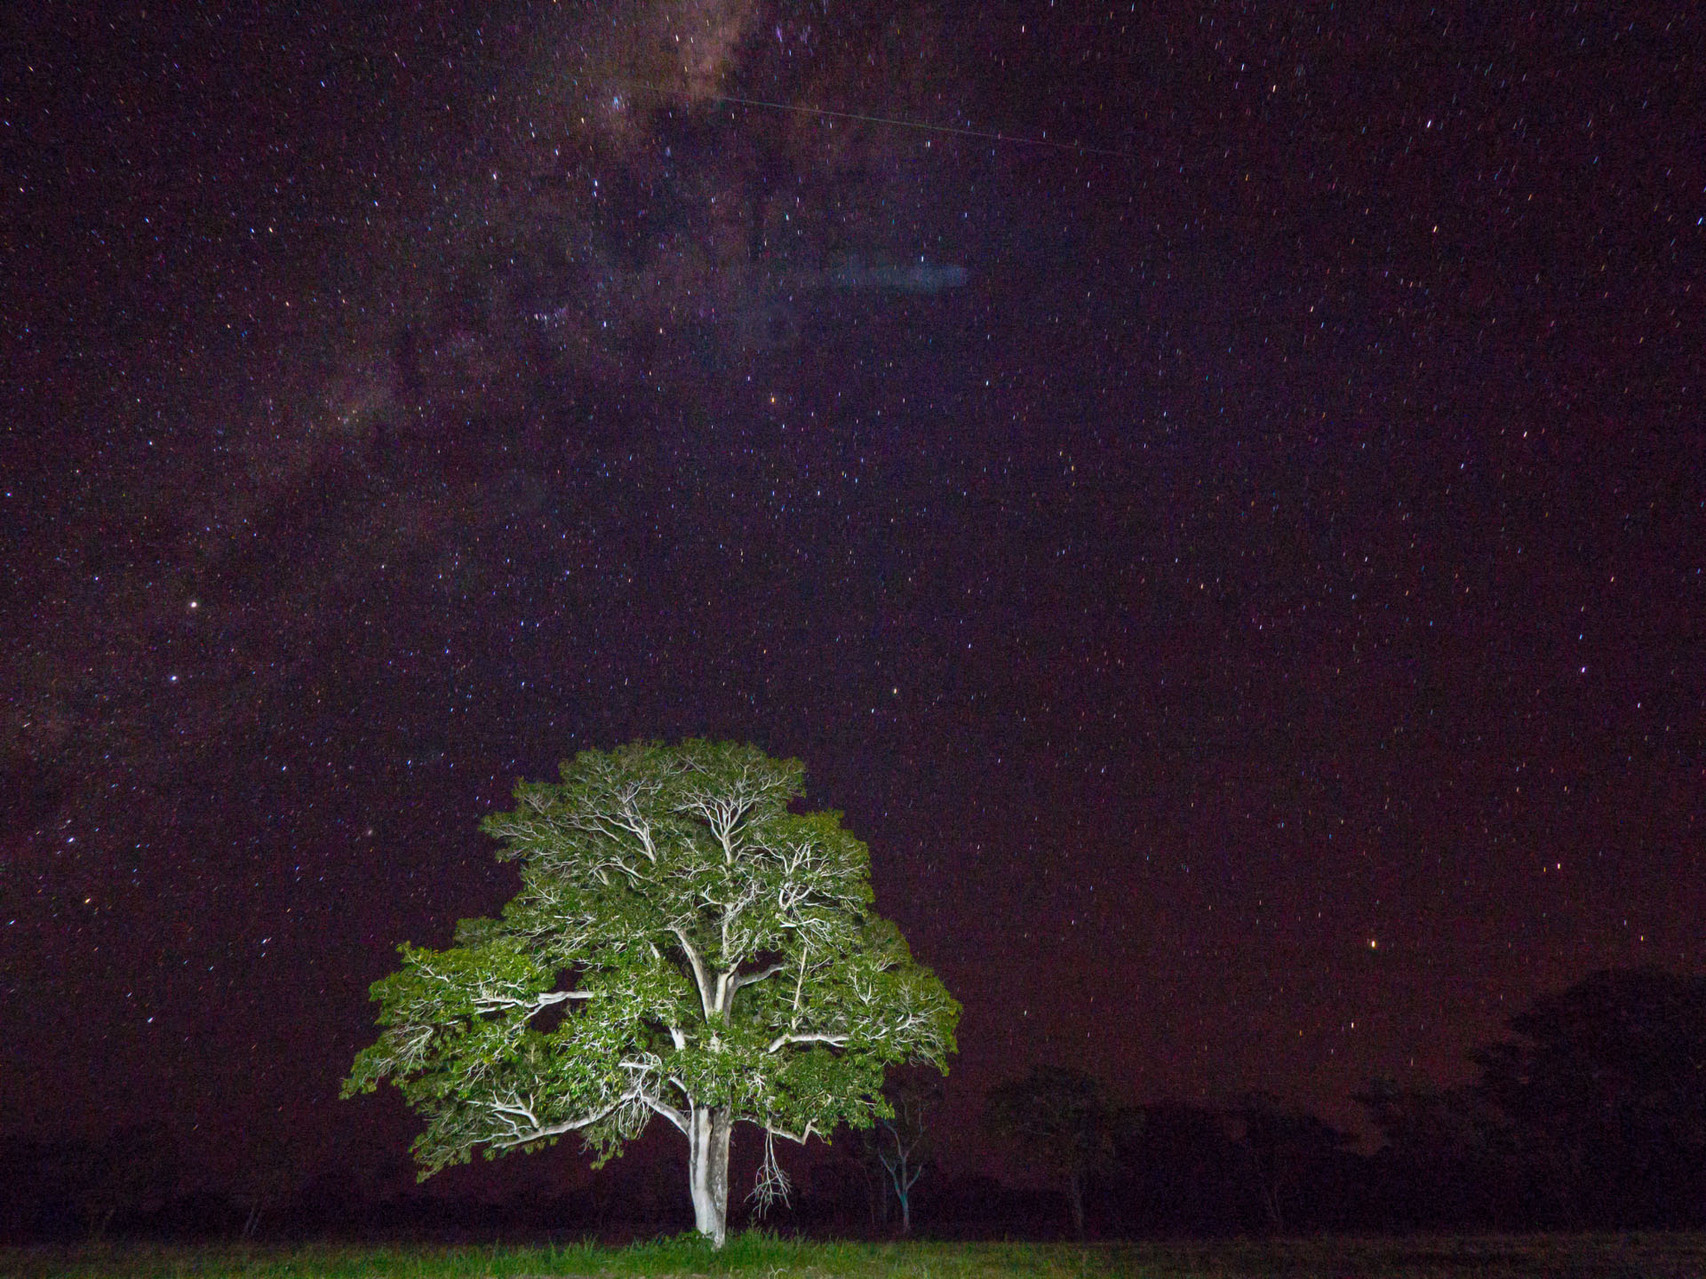 Pantanal in a pitch black night with an incredible sky panorama (shutter speed 60s, tree 5s manually illuminated with a small torch)